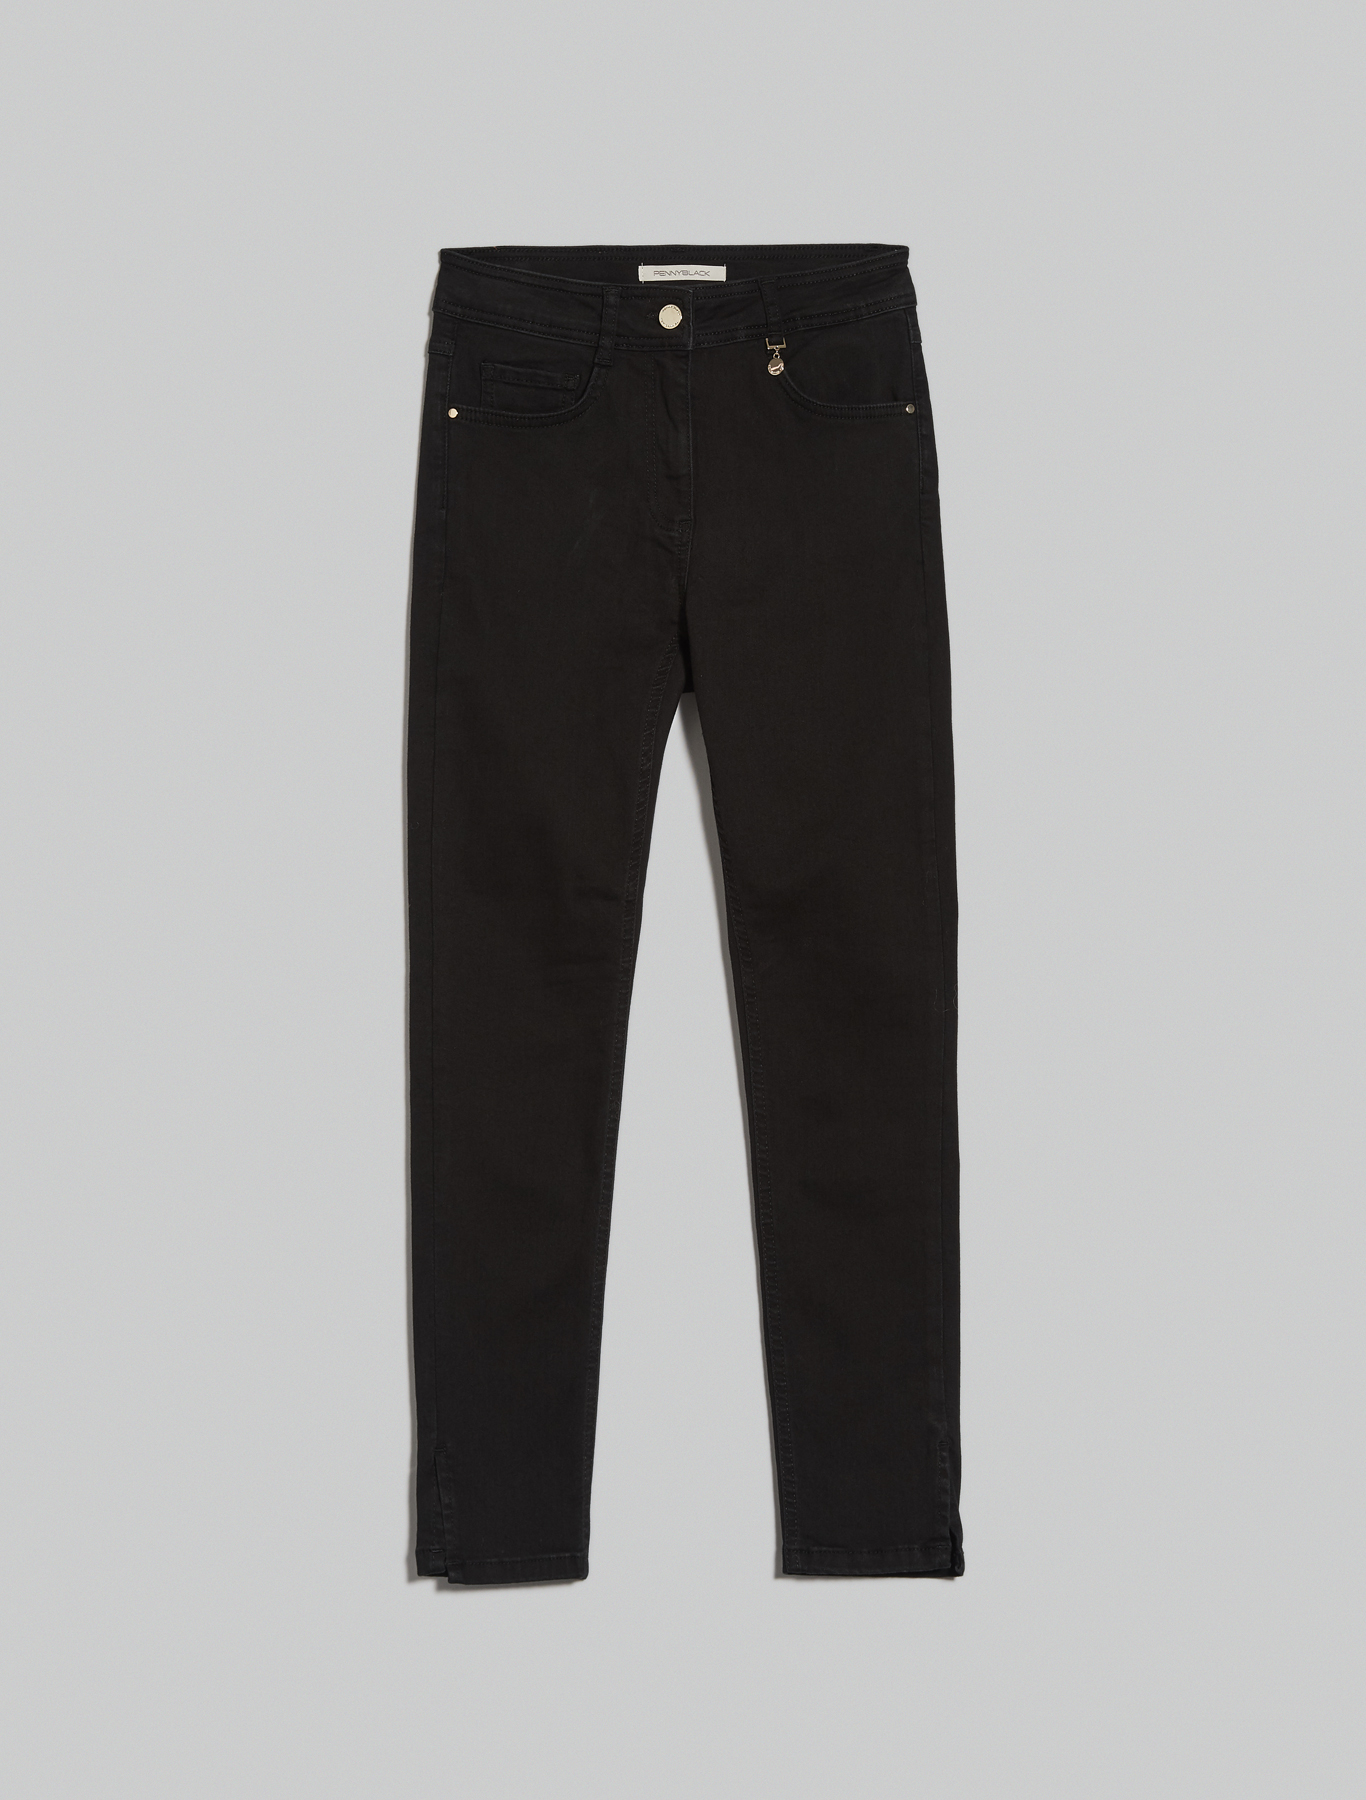 Super stretch skinny jeans - black - pennyblack